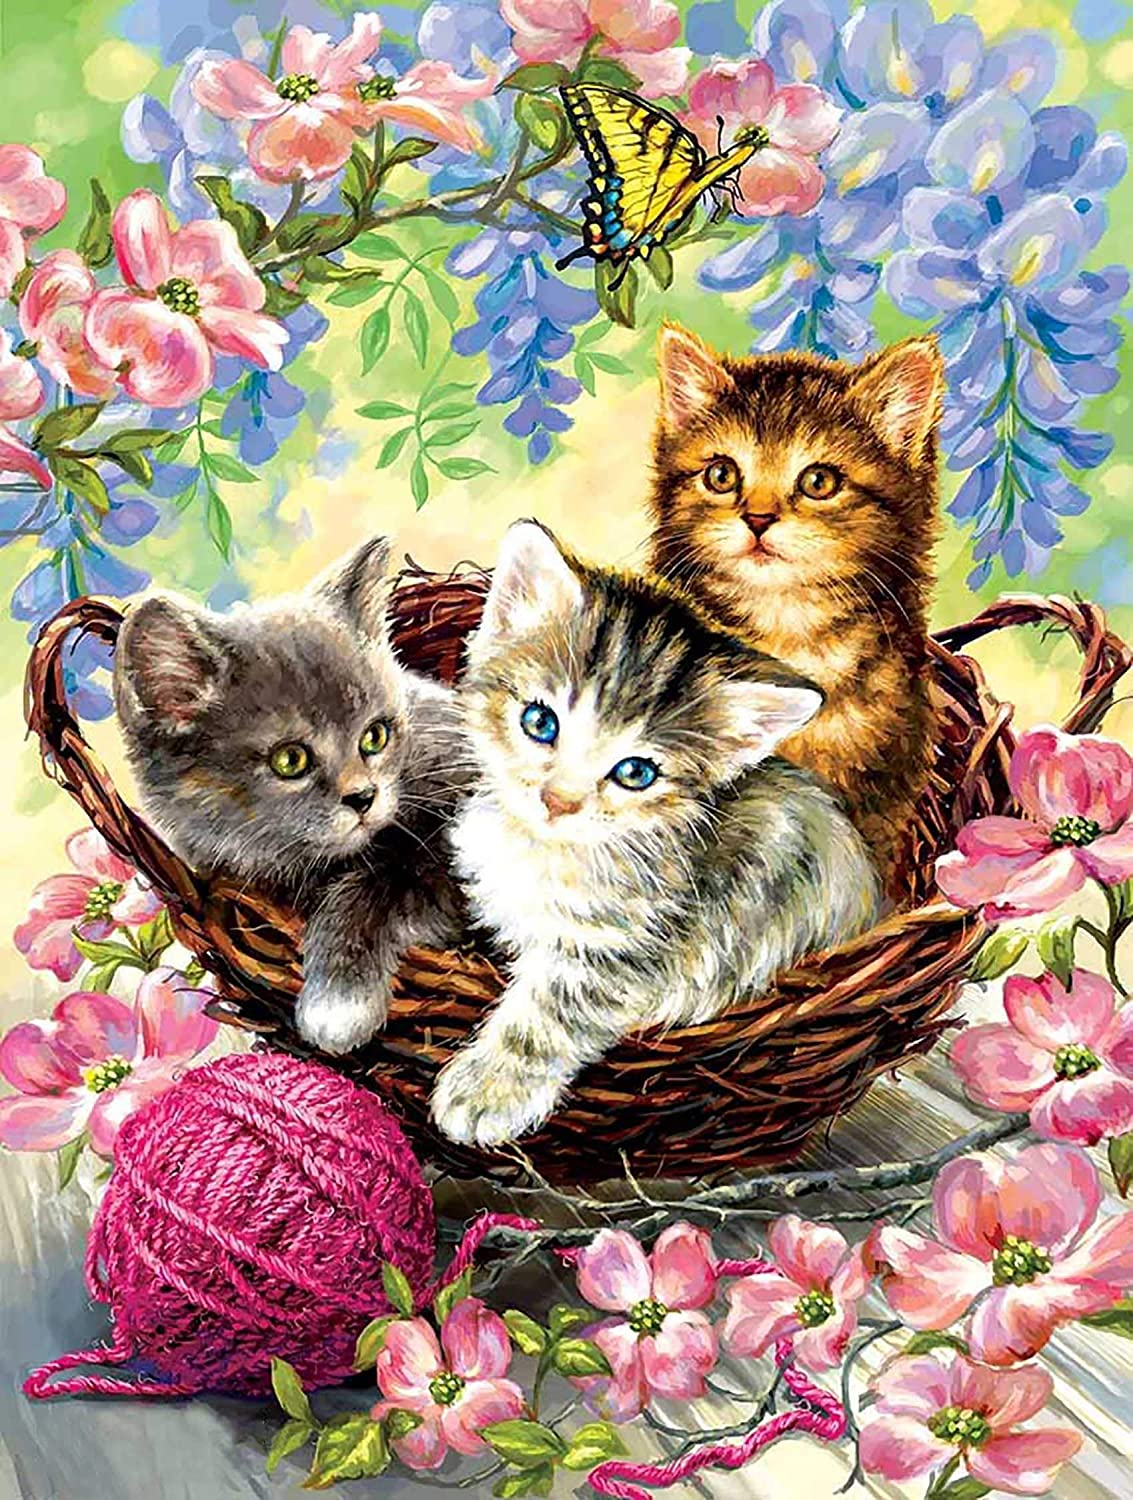 Reofrey DIY Diamond Painting overseas Kits Art Cat Super popular specialty store for An Adults